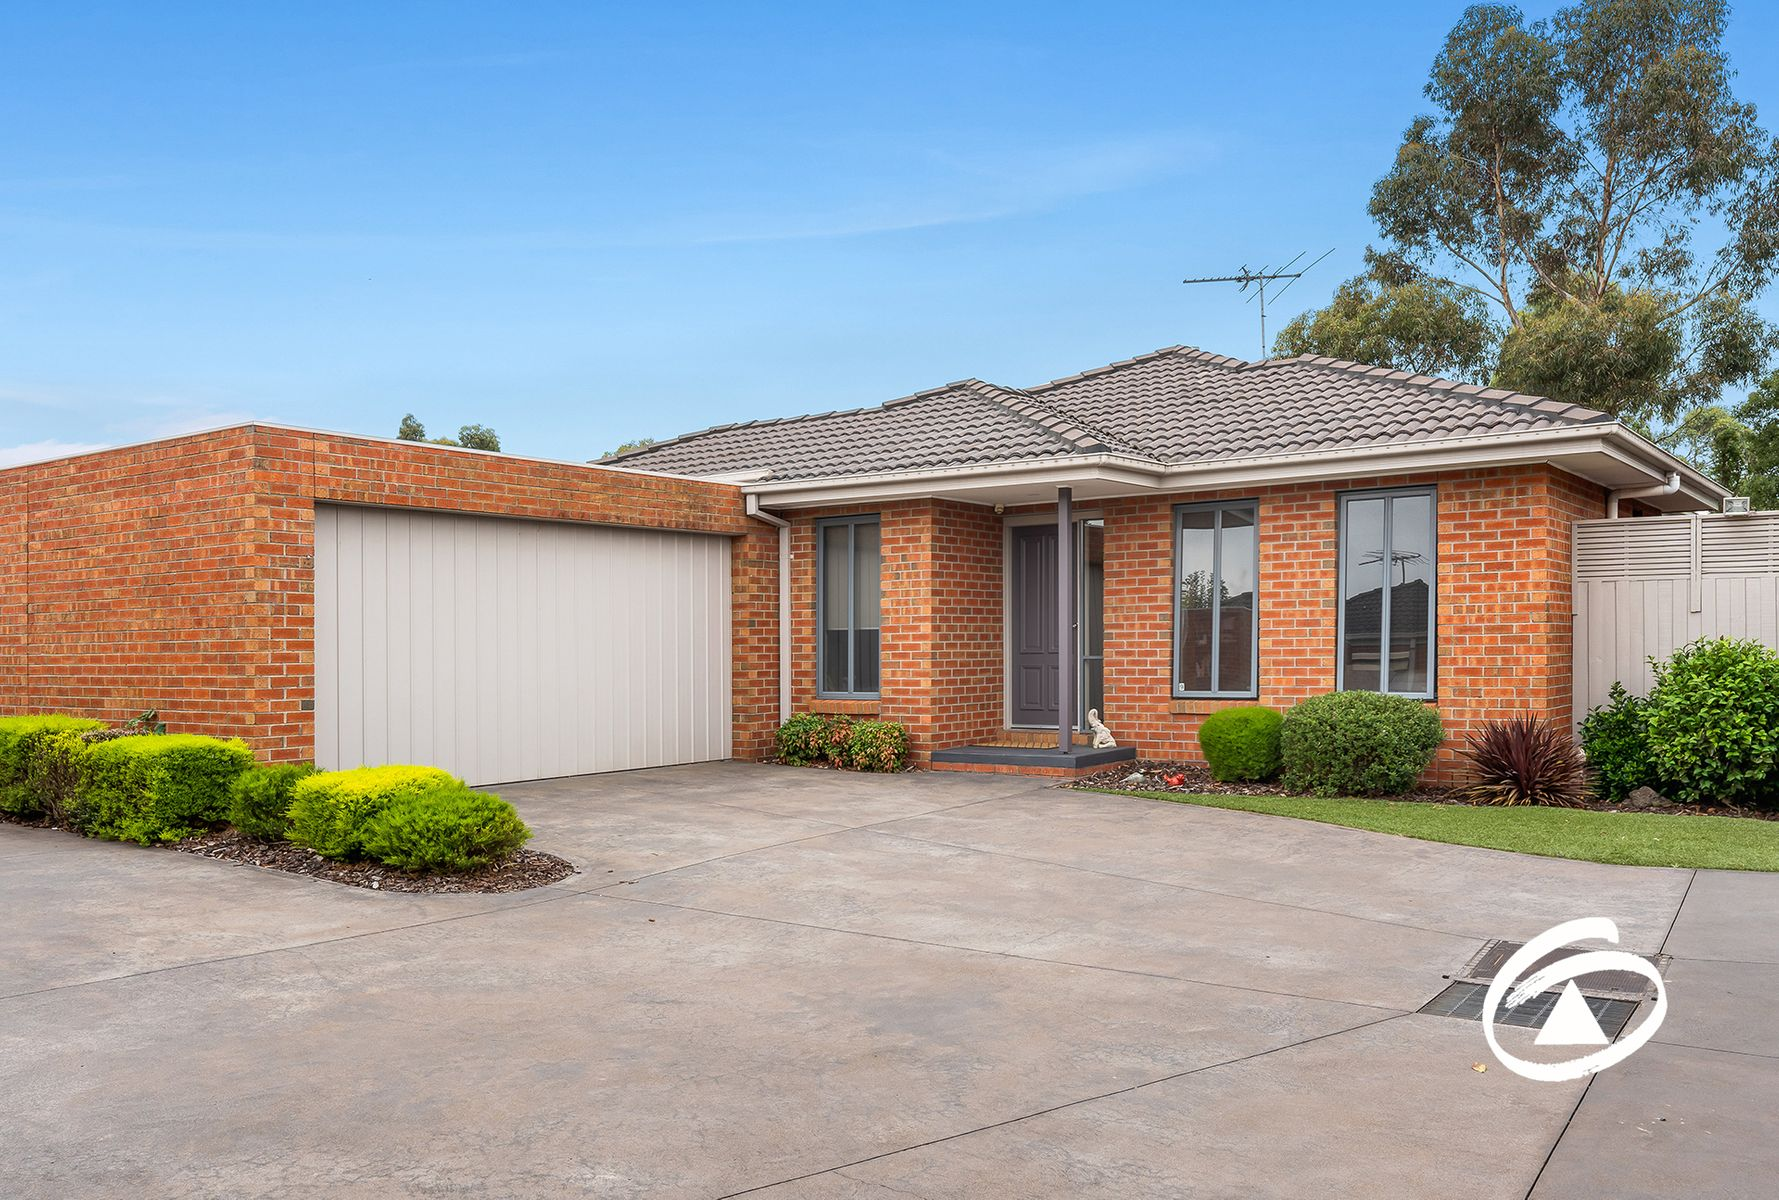 9/25 King Street, Pakenham, VIC 3810